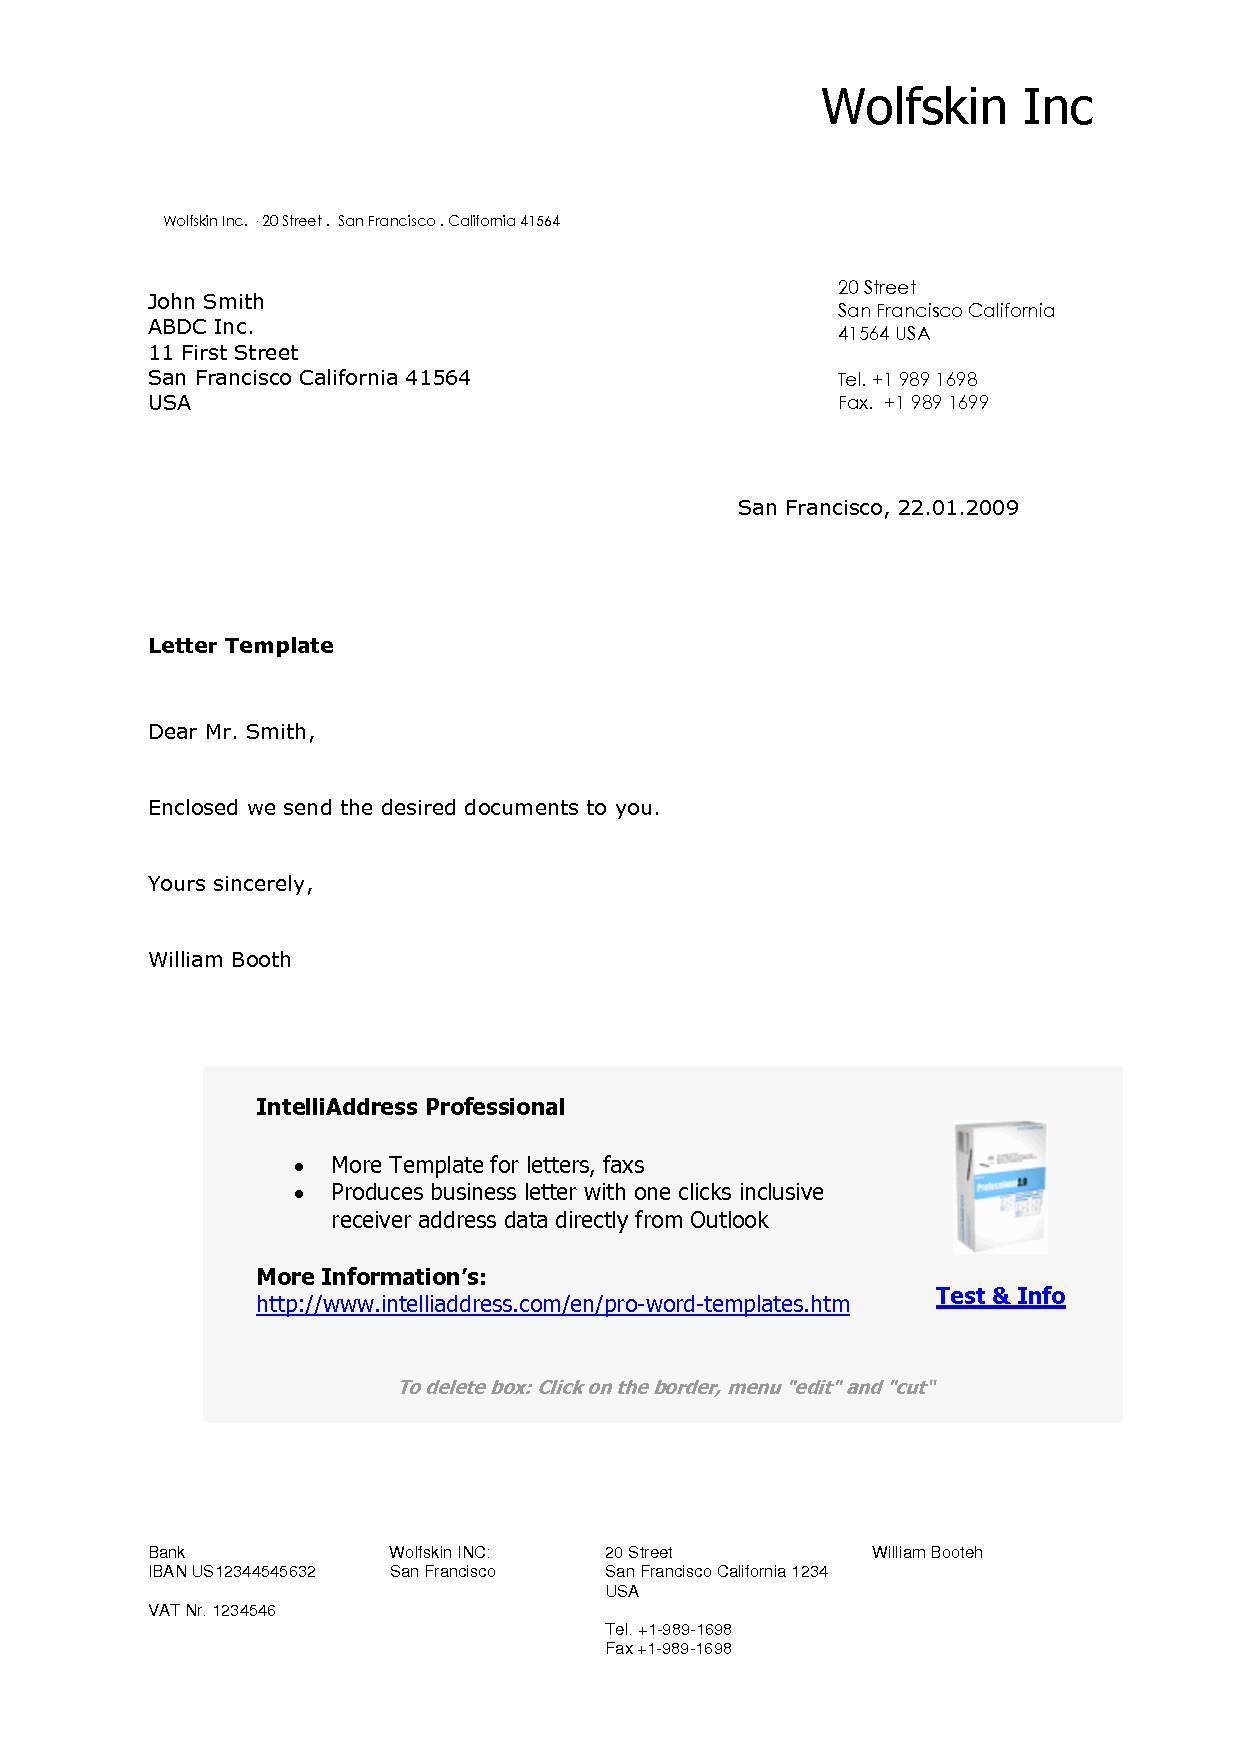 Business Letter Template Professional Format Automate Mail Merges